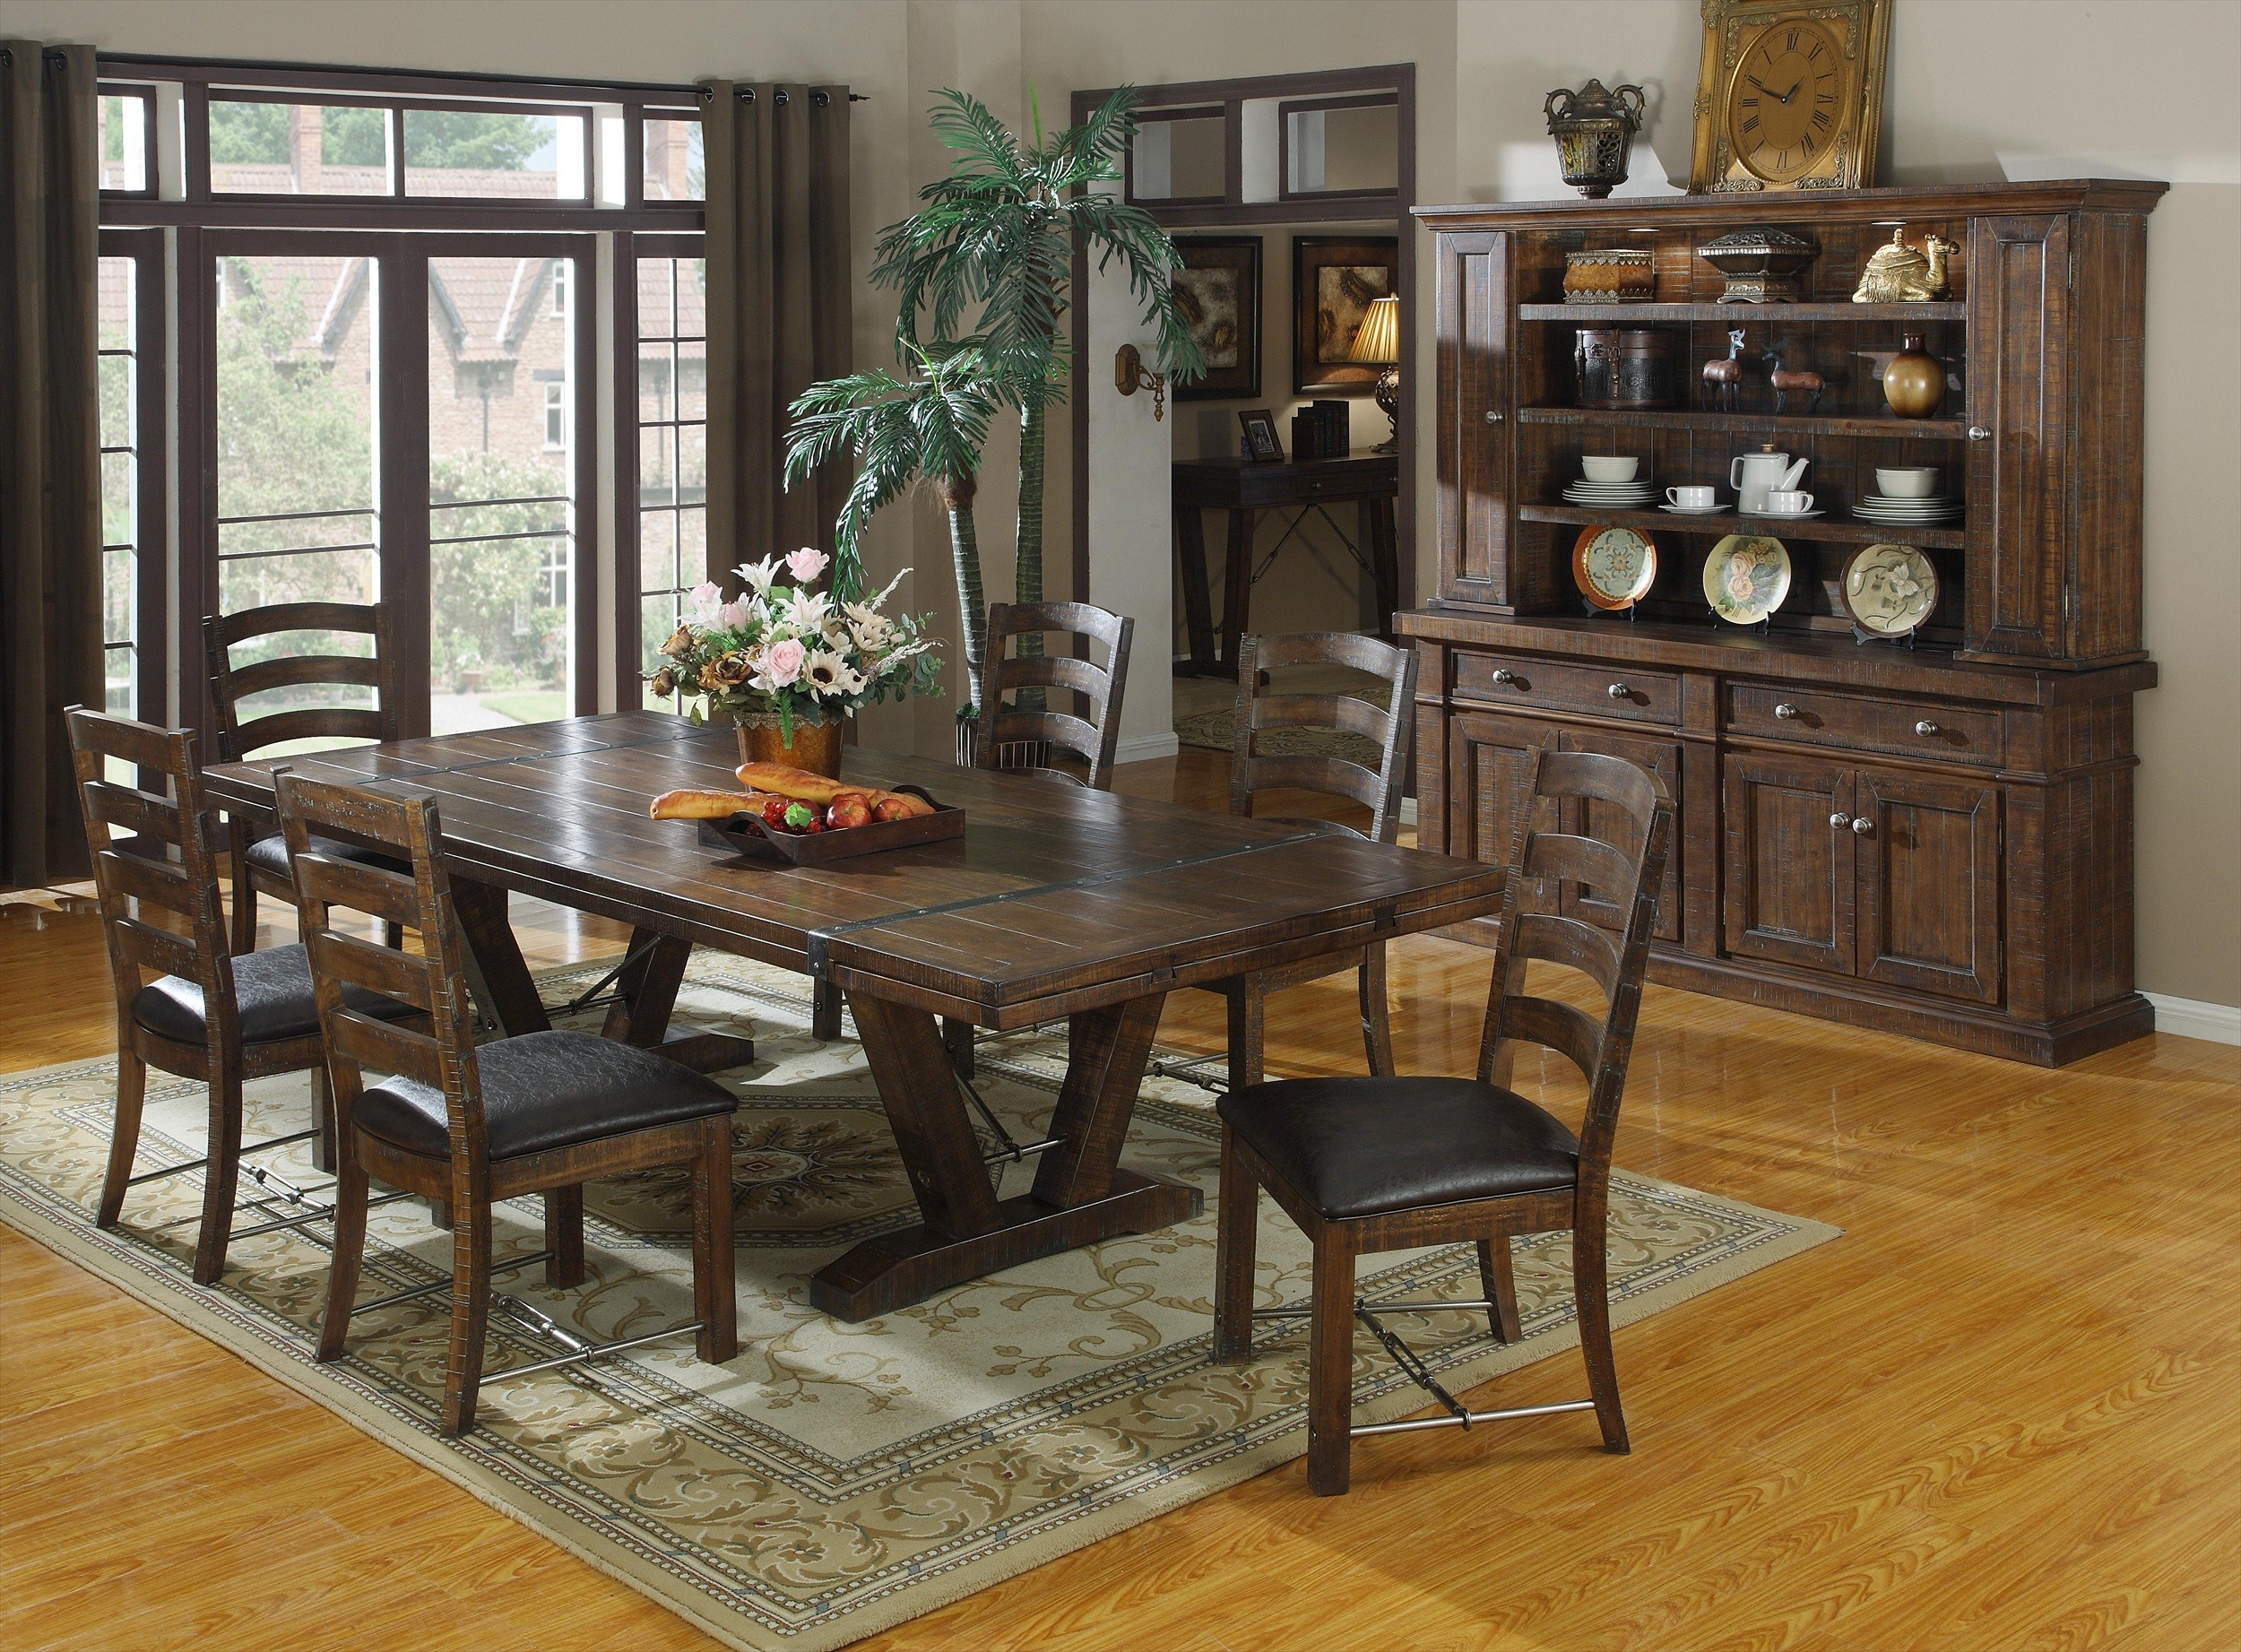 Favorite Dining Room : Formal Dining Room Ideas Together With Rustic With Rustic Pine Small Dining Tables (View 9 of 30)